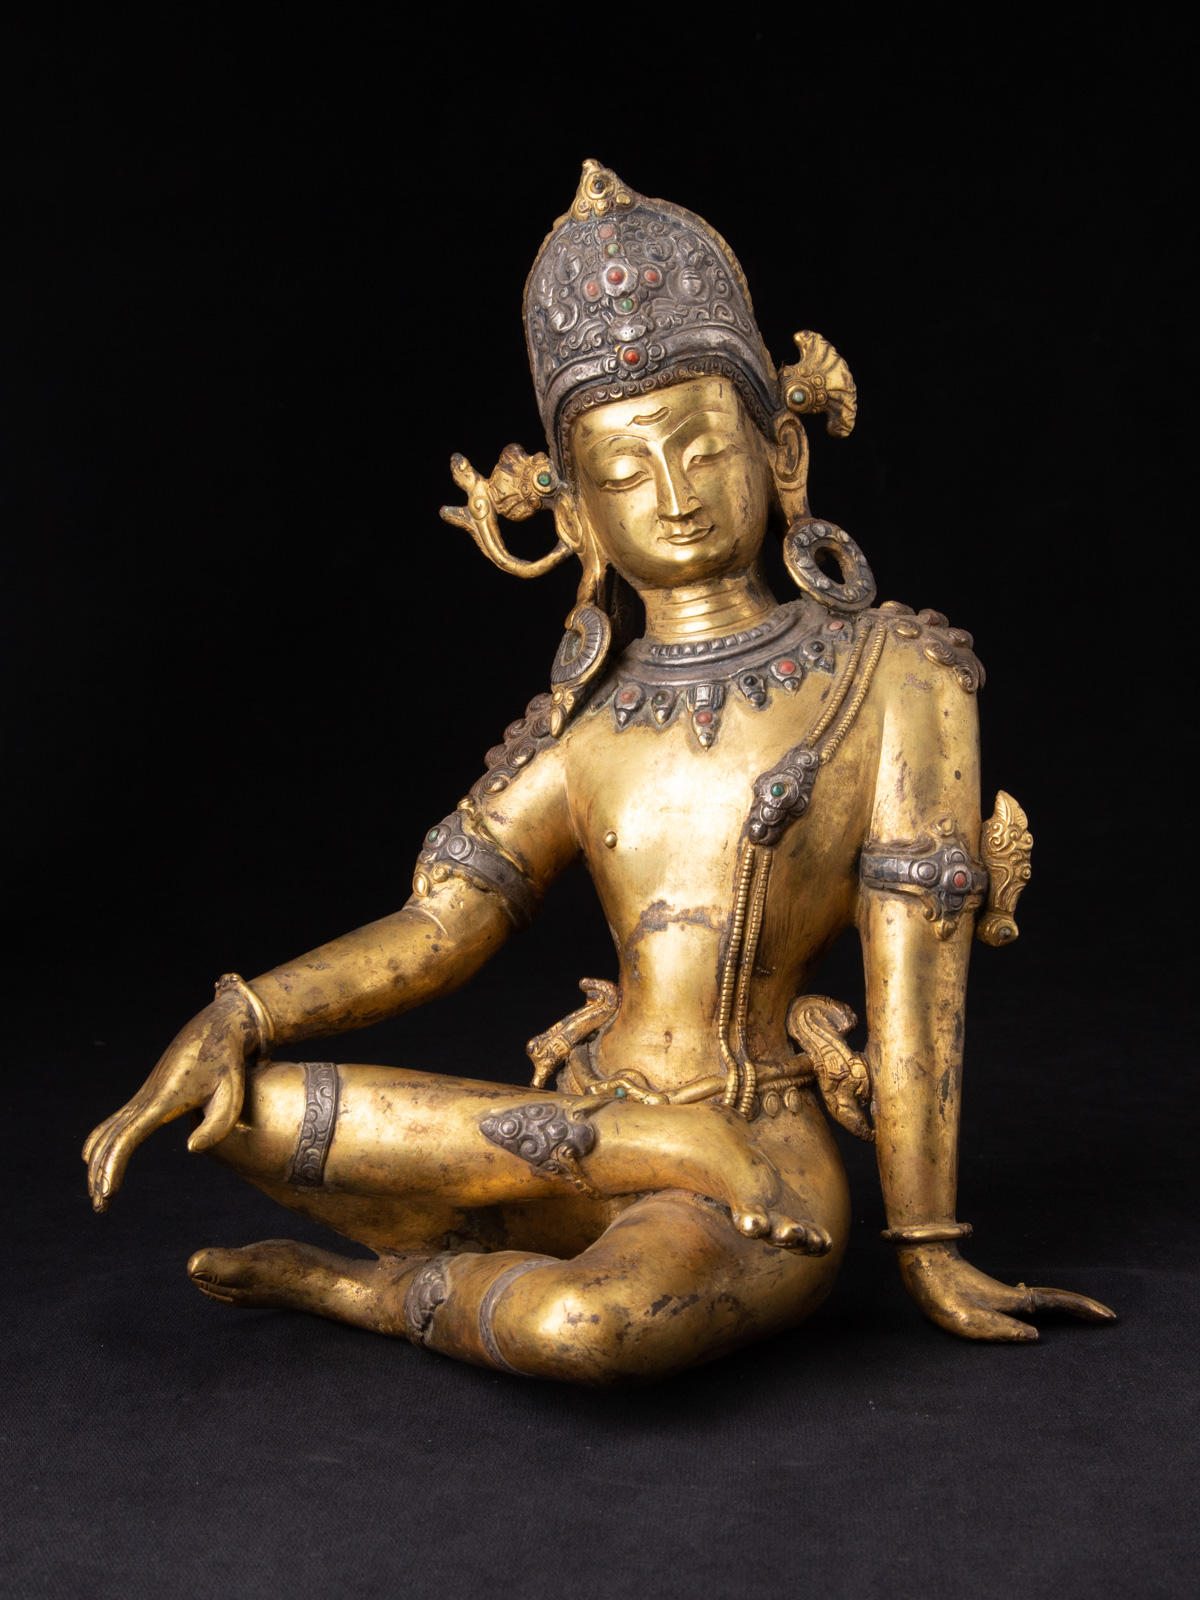 Old bronze Nepali Indra statue from Nepal made from Bronze